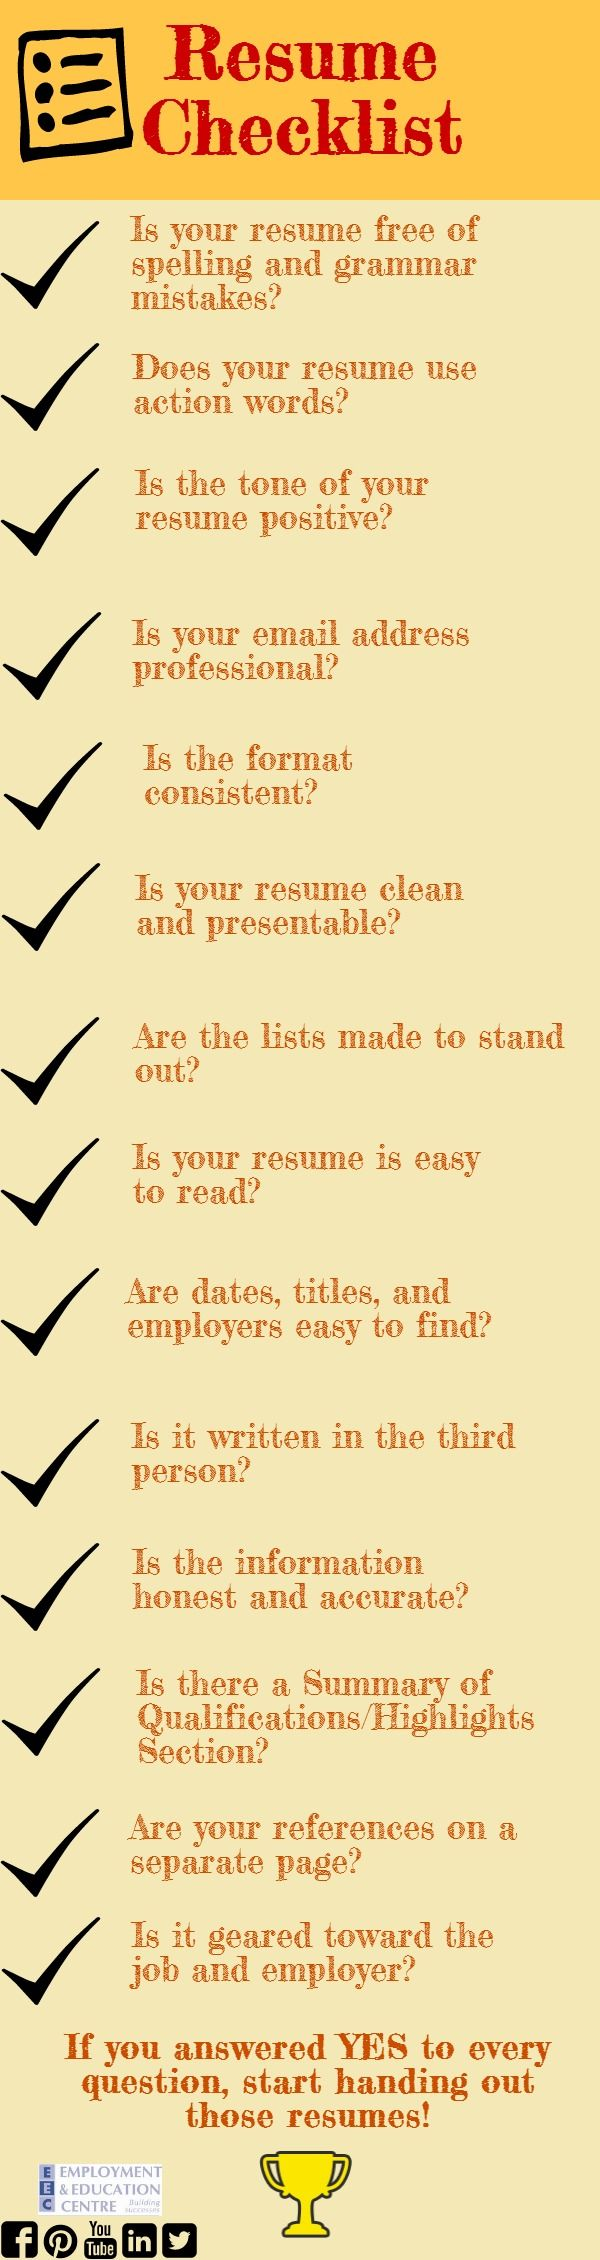 don t leave a job interview out asking these questions jobseekers resume cv check out this list before you hand out your resume